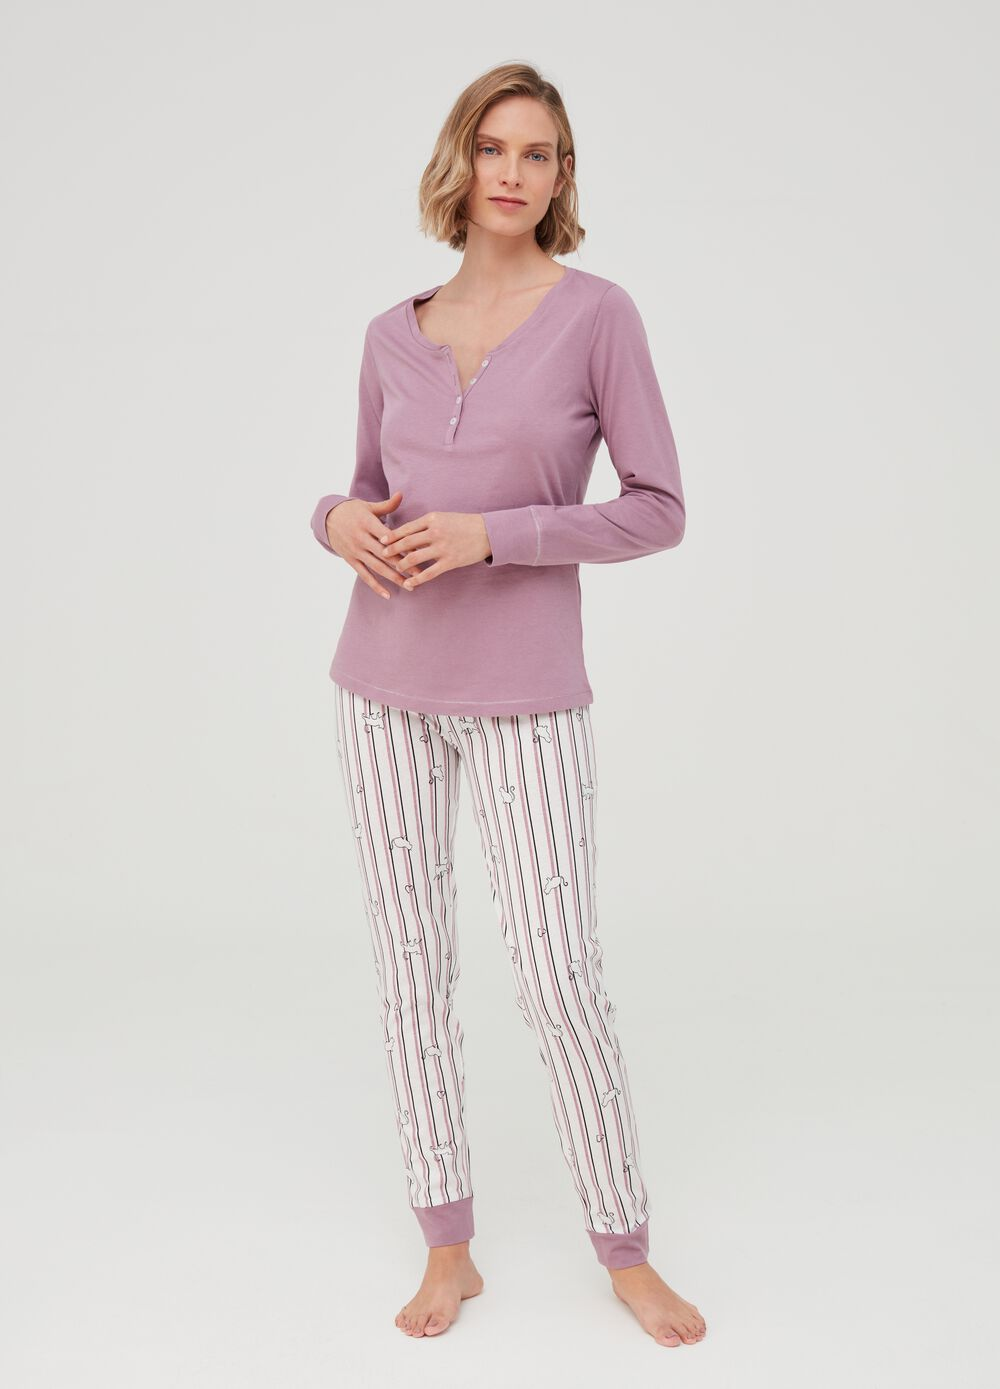 100% organic cotton pyjamas with stripes